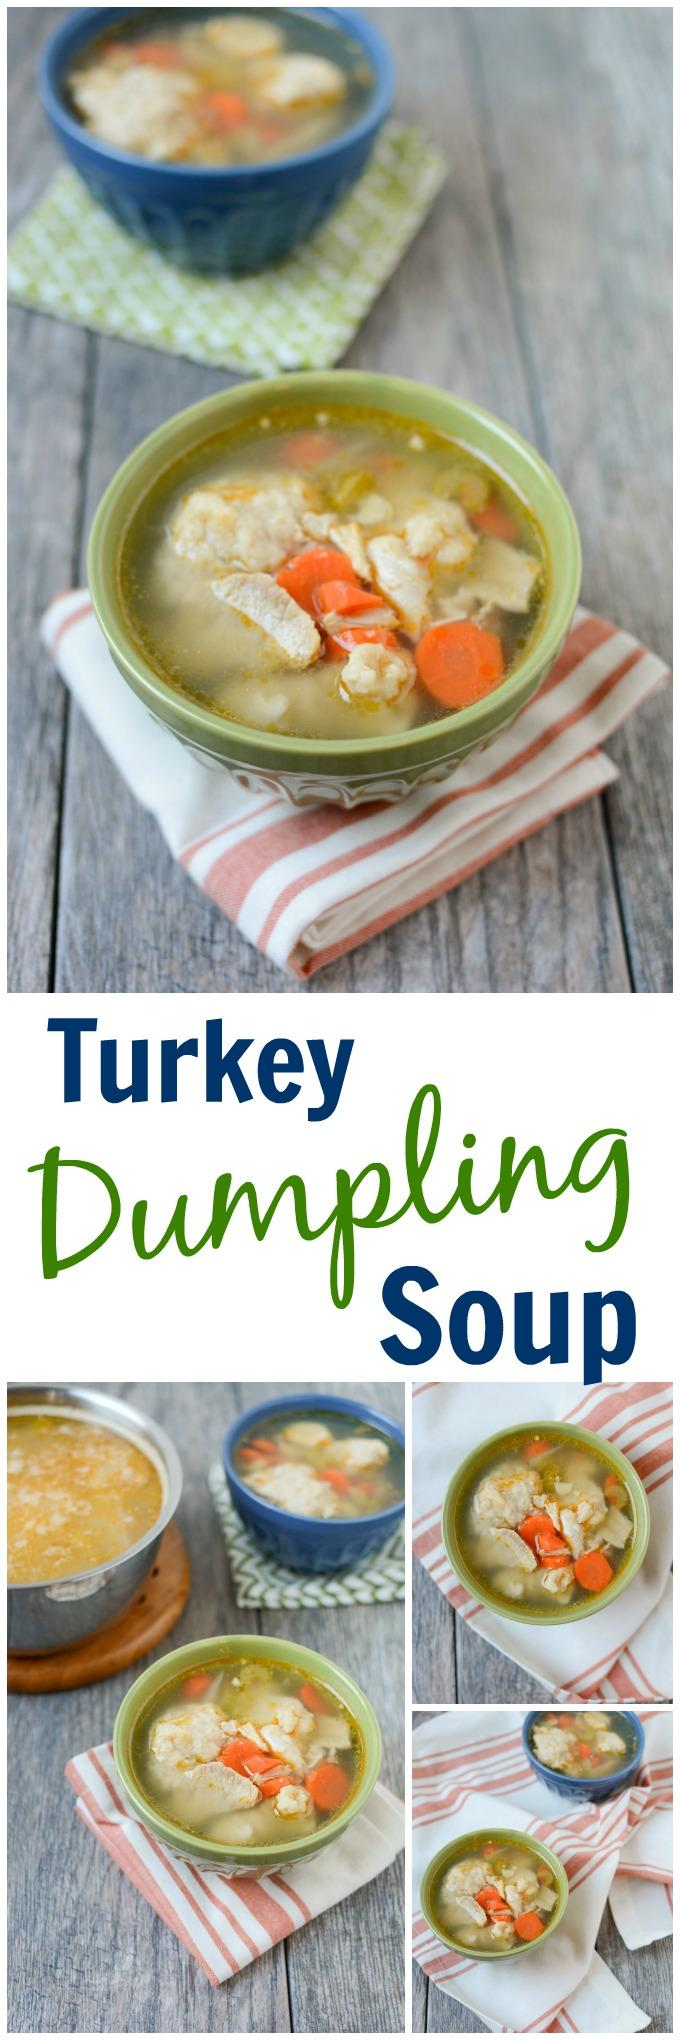 This Turkey Dumpling Soup is the perfect day after Thanksgiving meal. Use your turkey bones to make homemade broth, then add veggies, leftover turkey and dumplings for a warm, hearty meal!